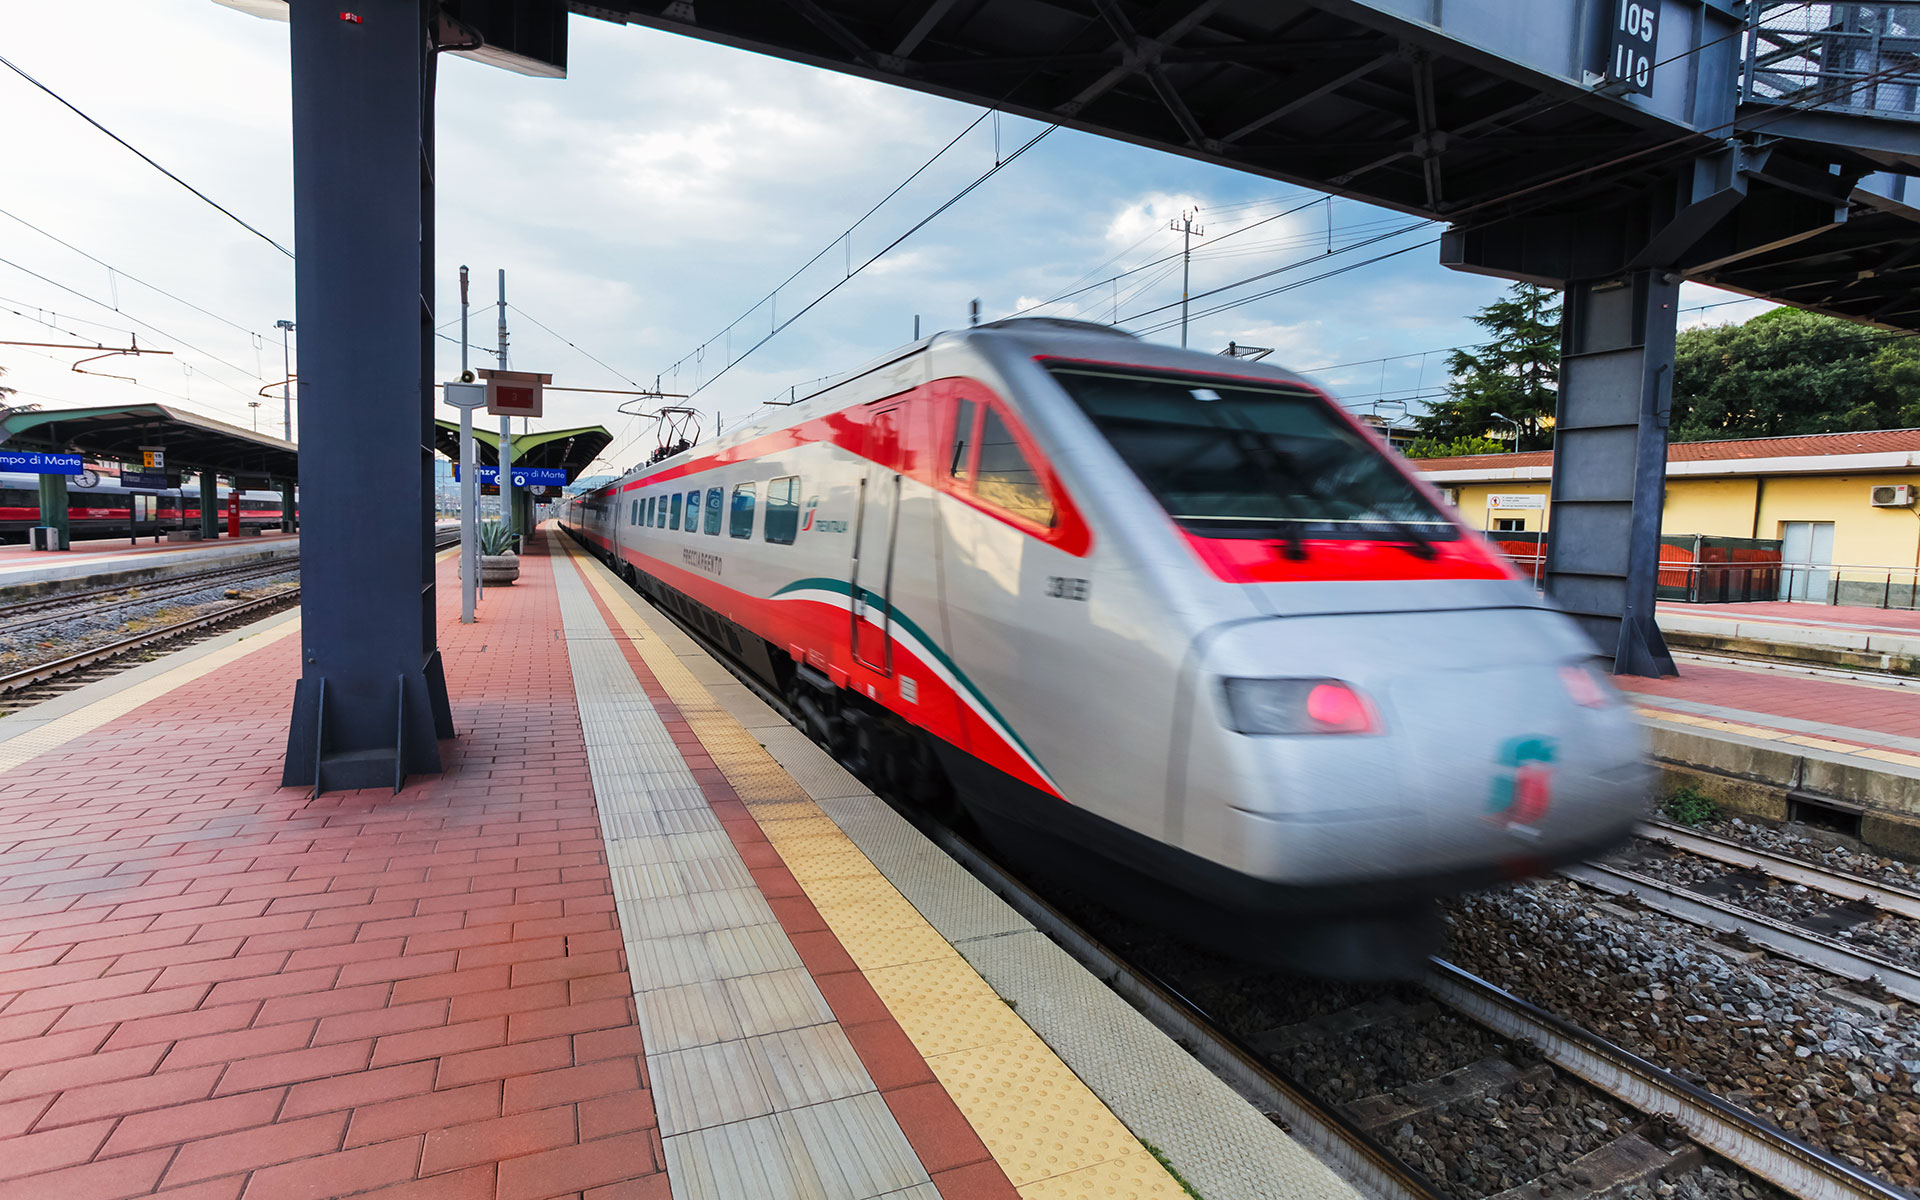 One of Trenitalia's Frecciargento trains travelling through Florence Campo di Marte station (photo © Zazamaza / dreamstime.com).